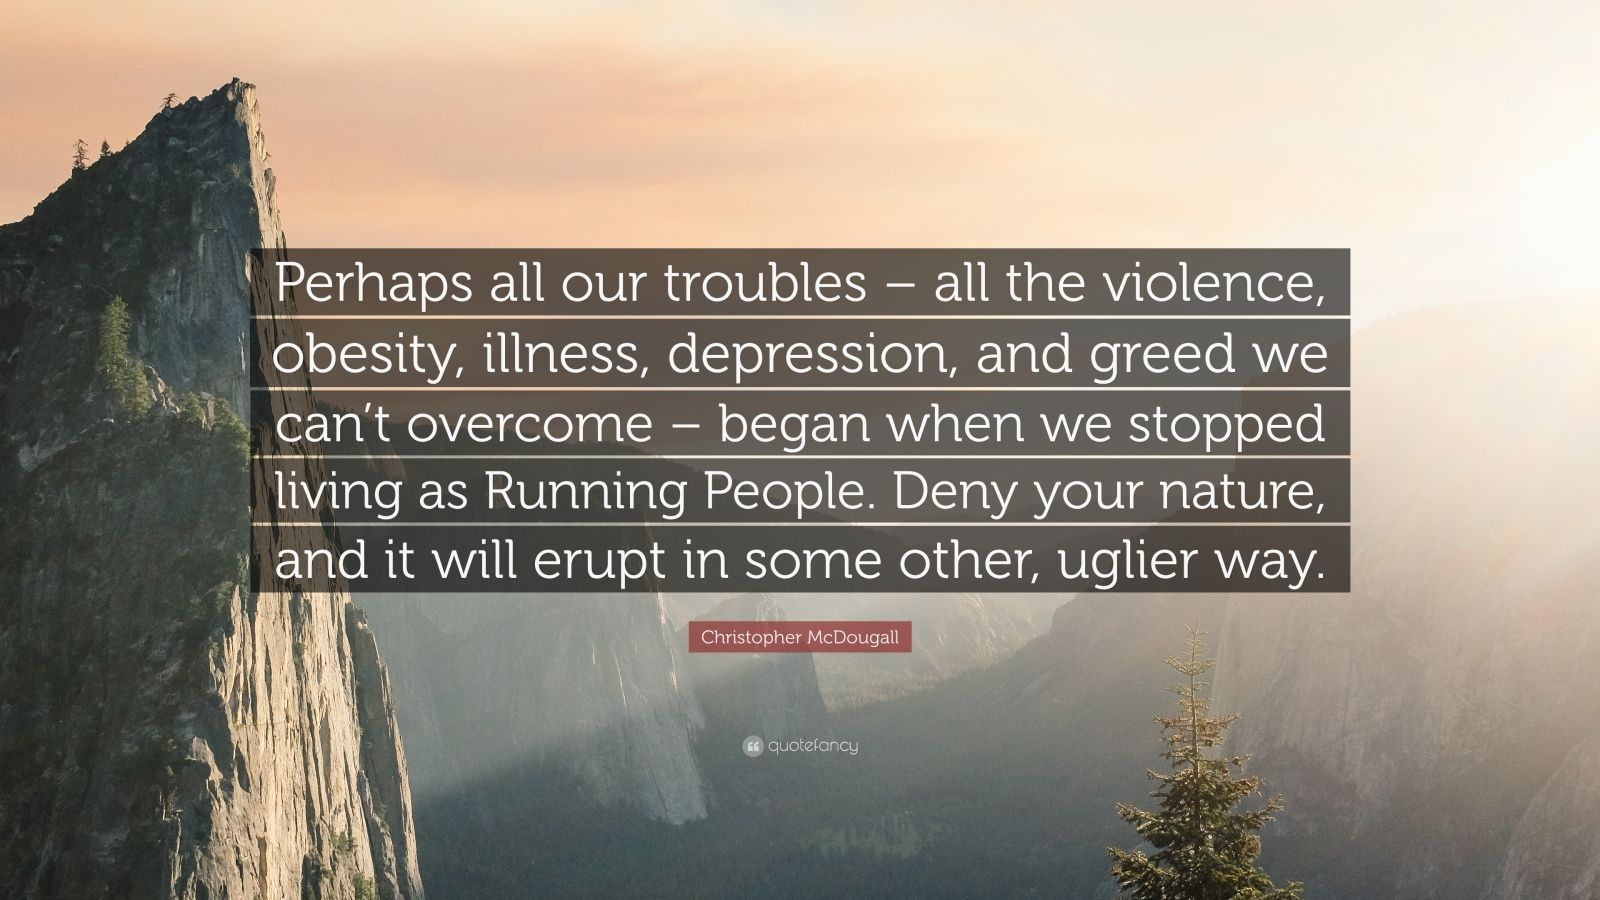 """Christopher McDougall Quote: """"Perhaps all our troubles – all the violence, obesity, illness, depression, and greed we can't overcome – began when we stopped living as Running People. Deny your nature, and it will erupt in some other, uglier way."""""""